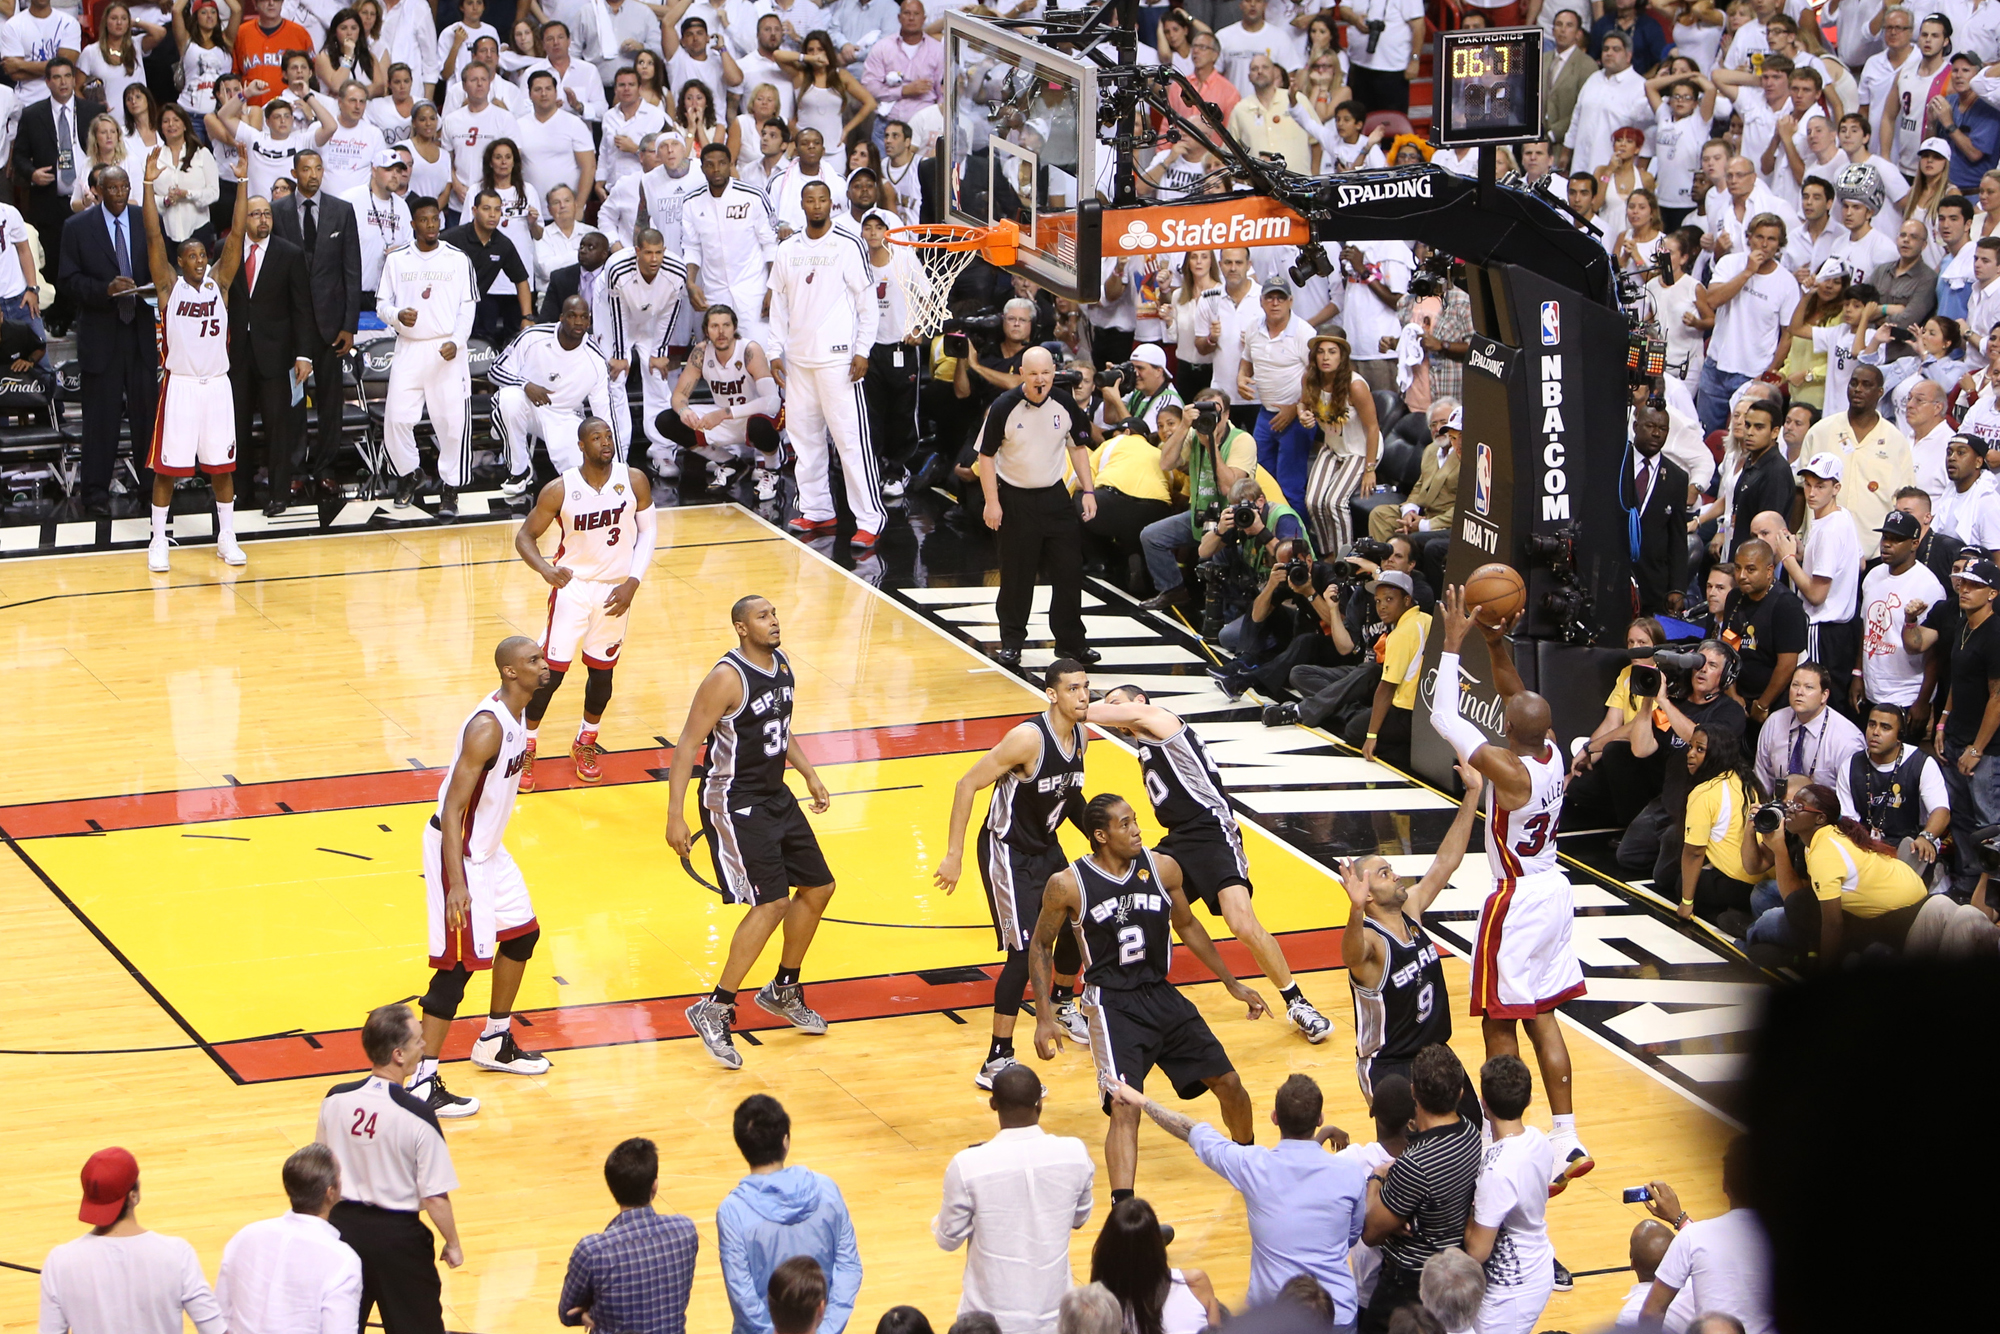 Ray Allen #34 of the Miami Heat shoots the game tying three-pointer against Tony Parker #9 of the San Antonio Spurs during Game Six of the 2013 NBA Finals on June 18, 2013 at American Airlines Arena in Miami, Florida.